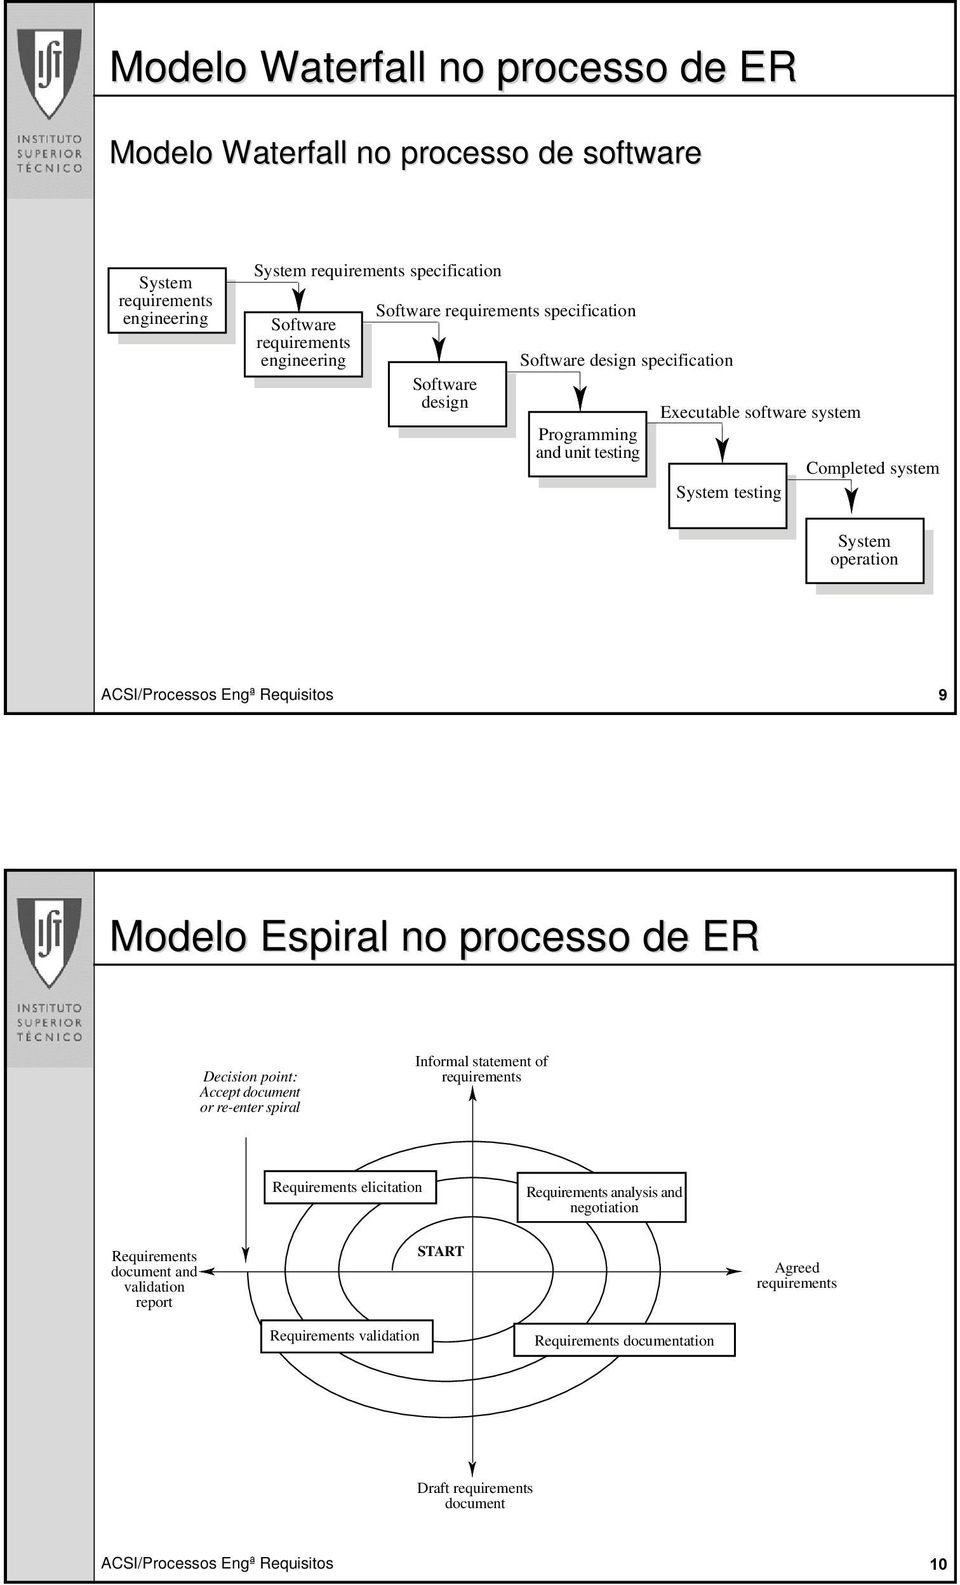 system System testing Completed system System operation Modelo Espiral no processo de ER Decision point: Accept document or re-enter spiral Informal